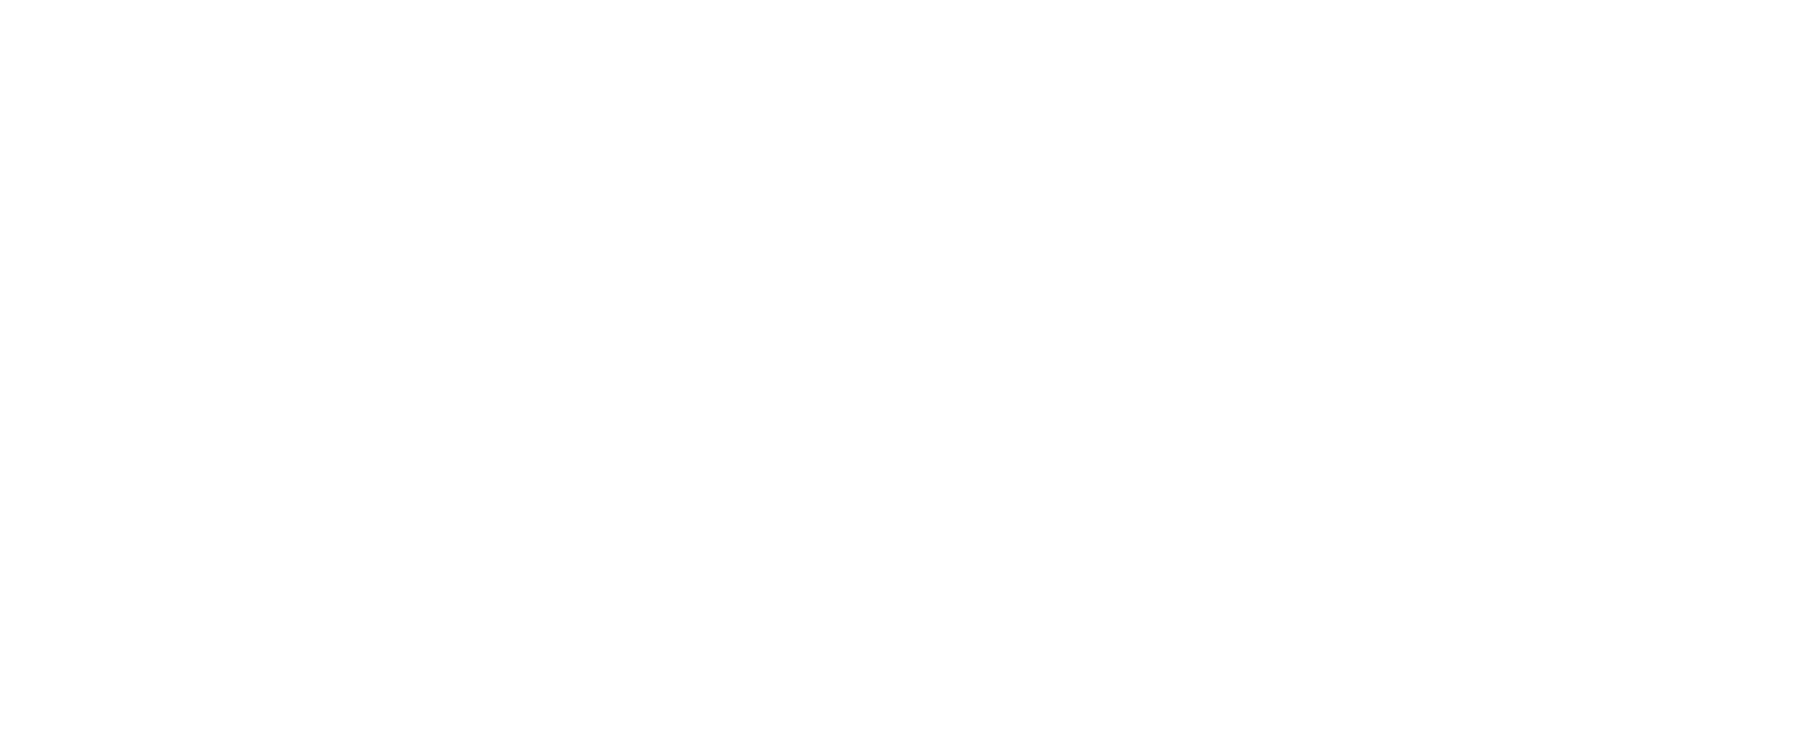 Simple Booth Help Center